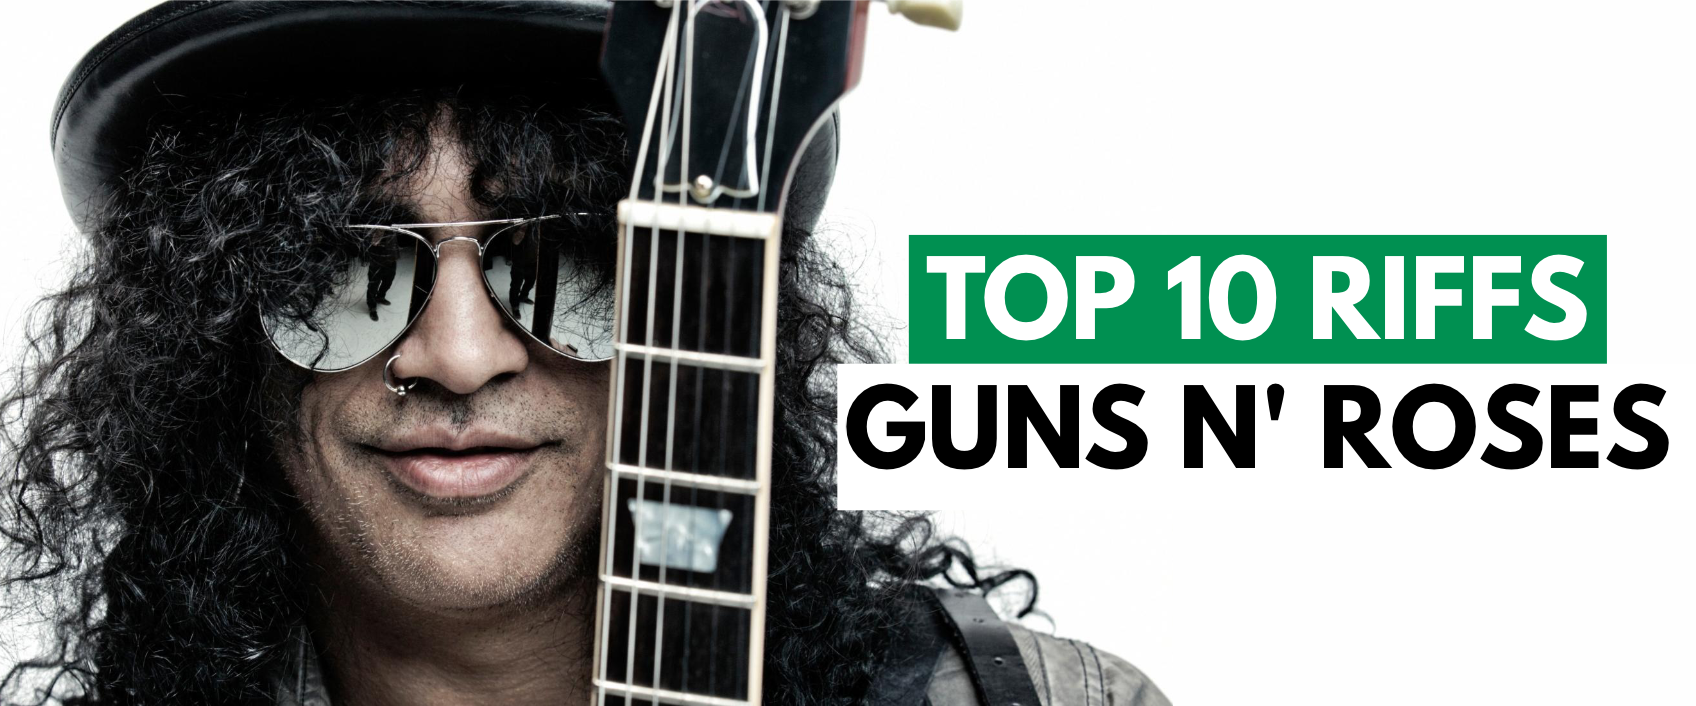 [FREE TABLATURES] Top 10 Guns N' Roses Riffs